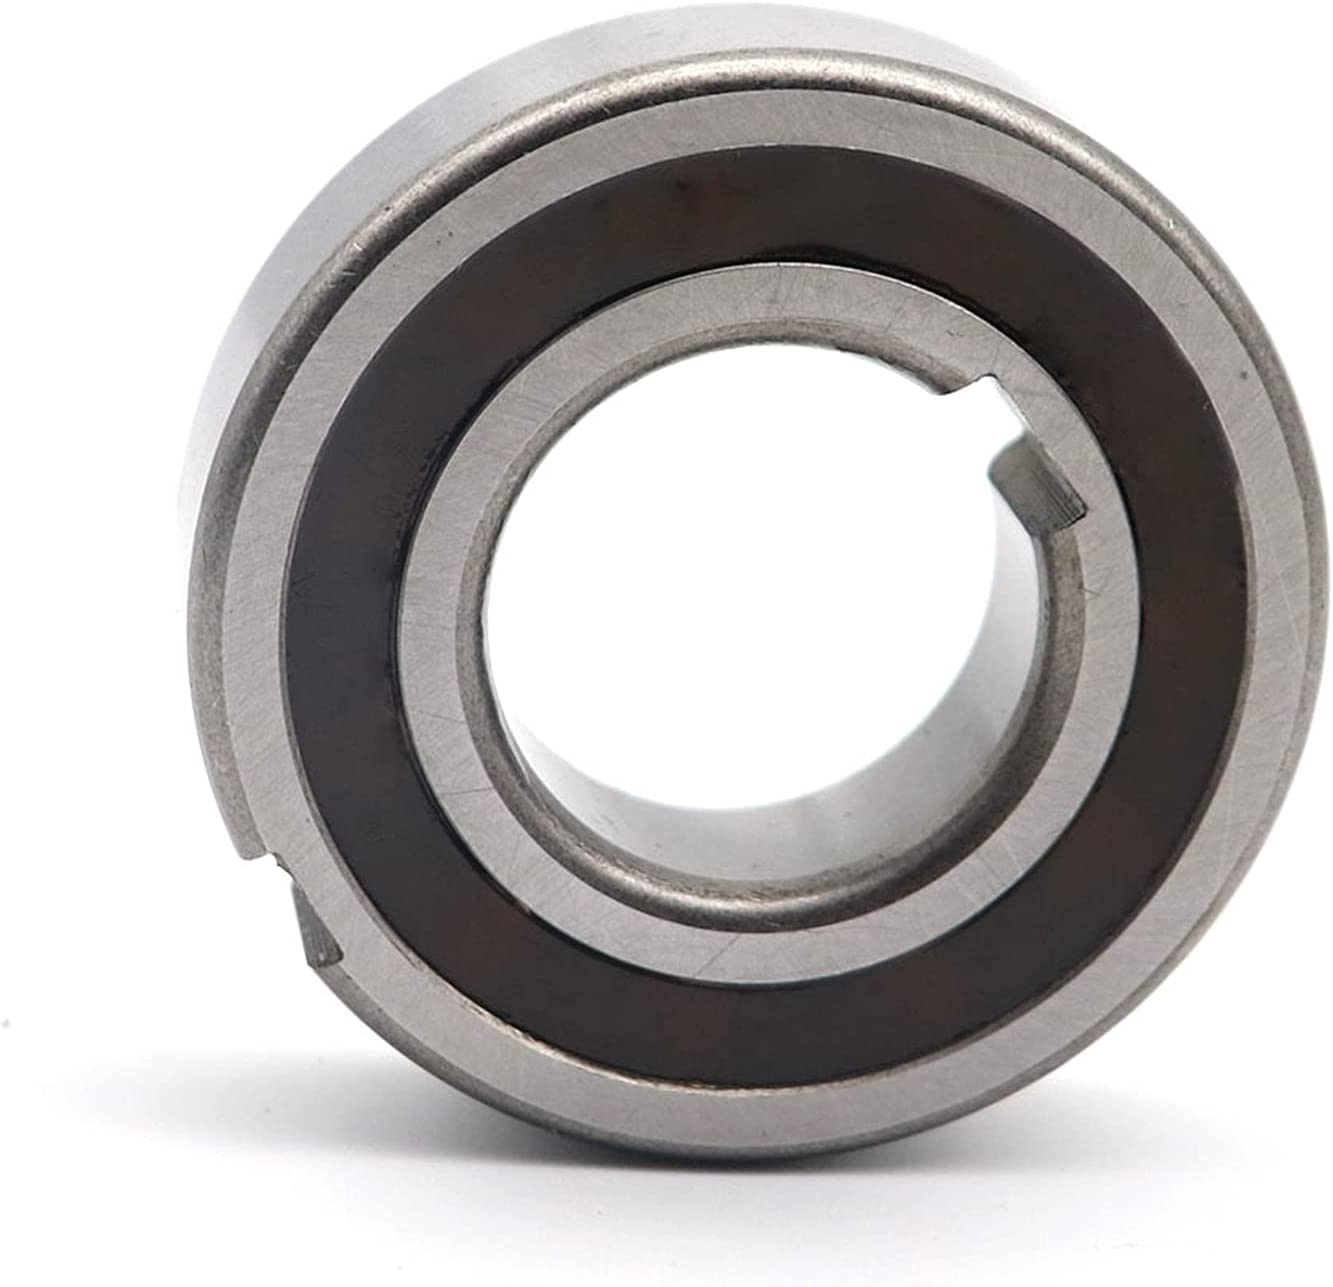 JAAIFC Indefinitely CSK 8 10 1215 17 20 25 One PP Clutch 30 35 40 Bearing supreme Way